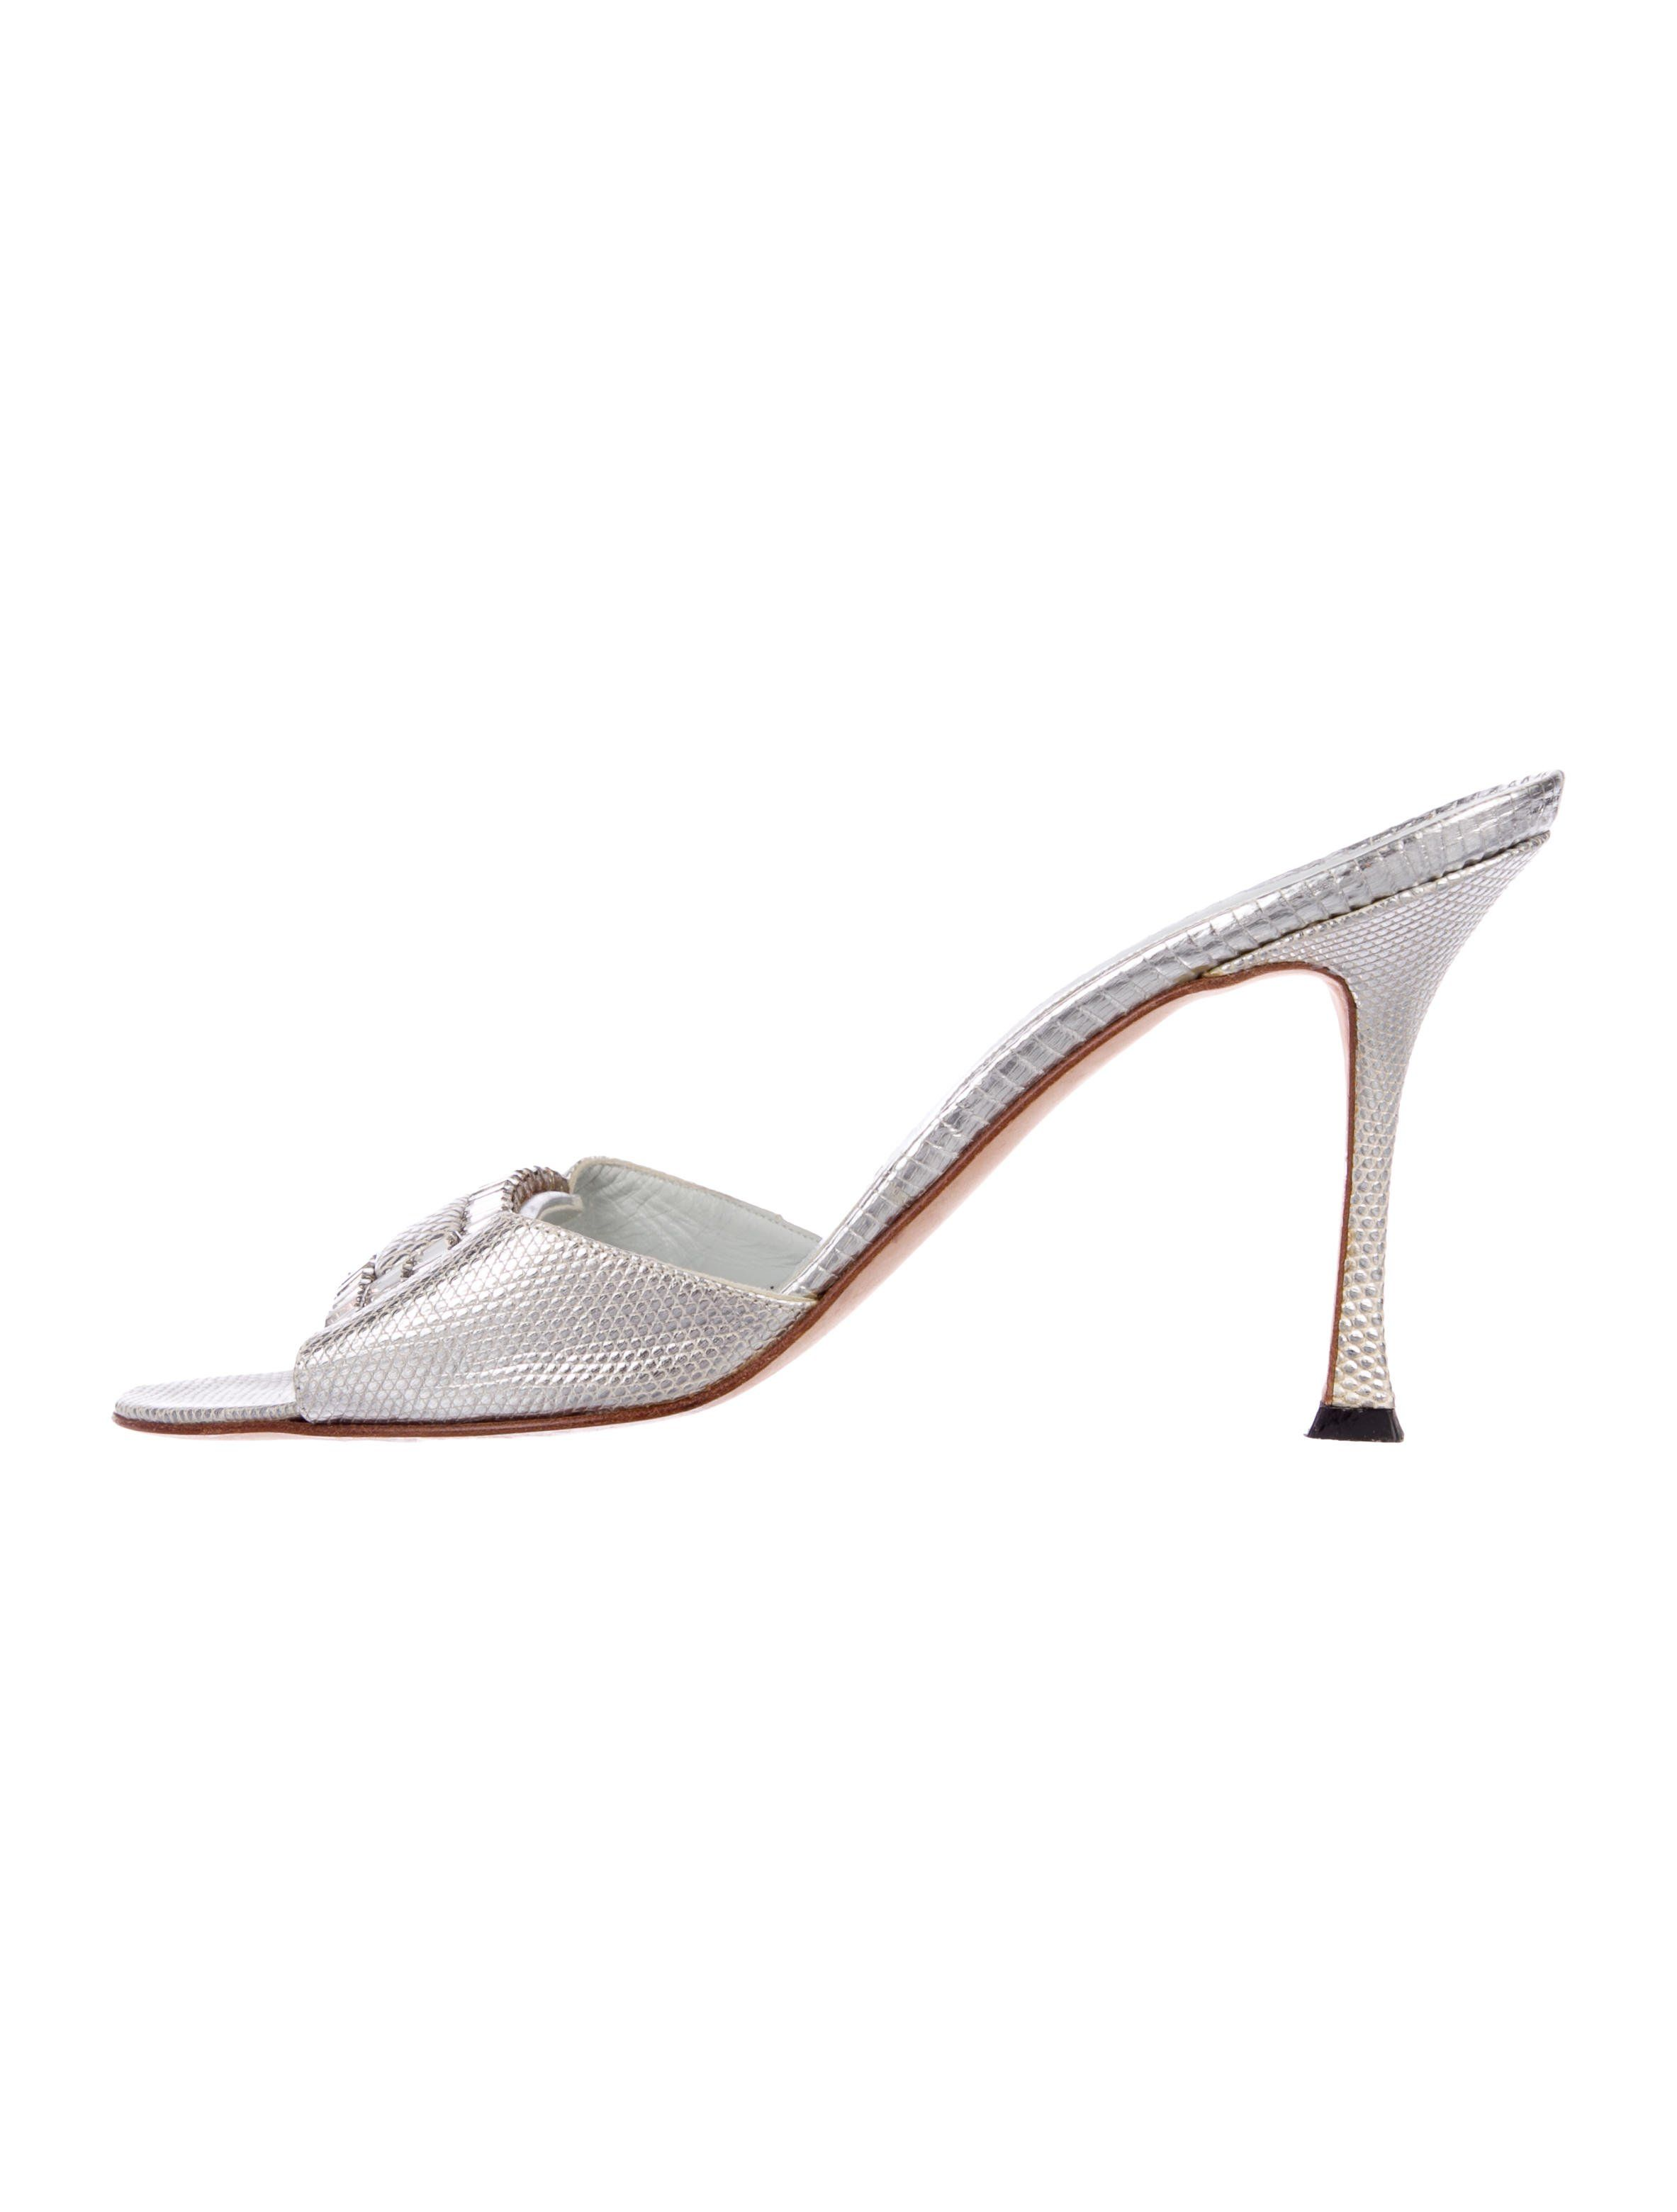 d32eb8b0580 Metallic silver lizard Manolo Blahnik slide sandals with crystal-set buckle  adornment at vamps and